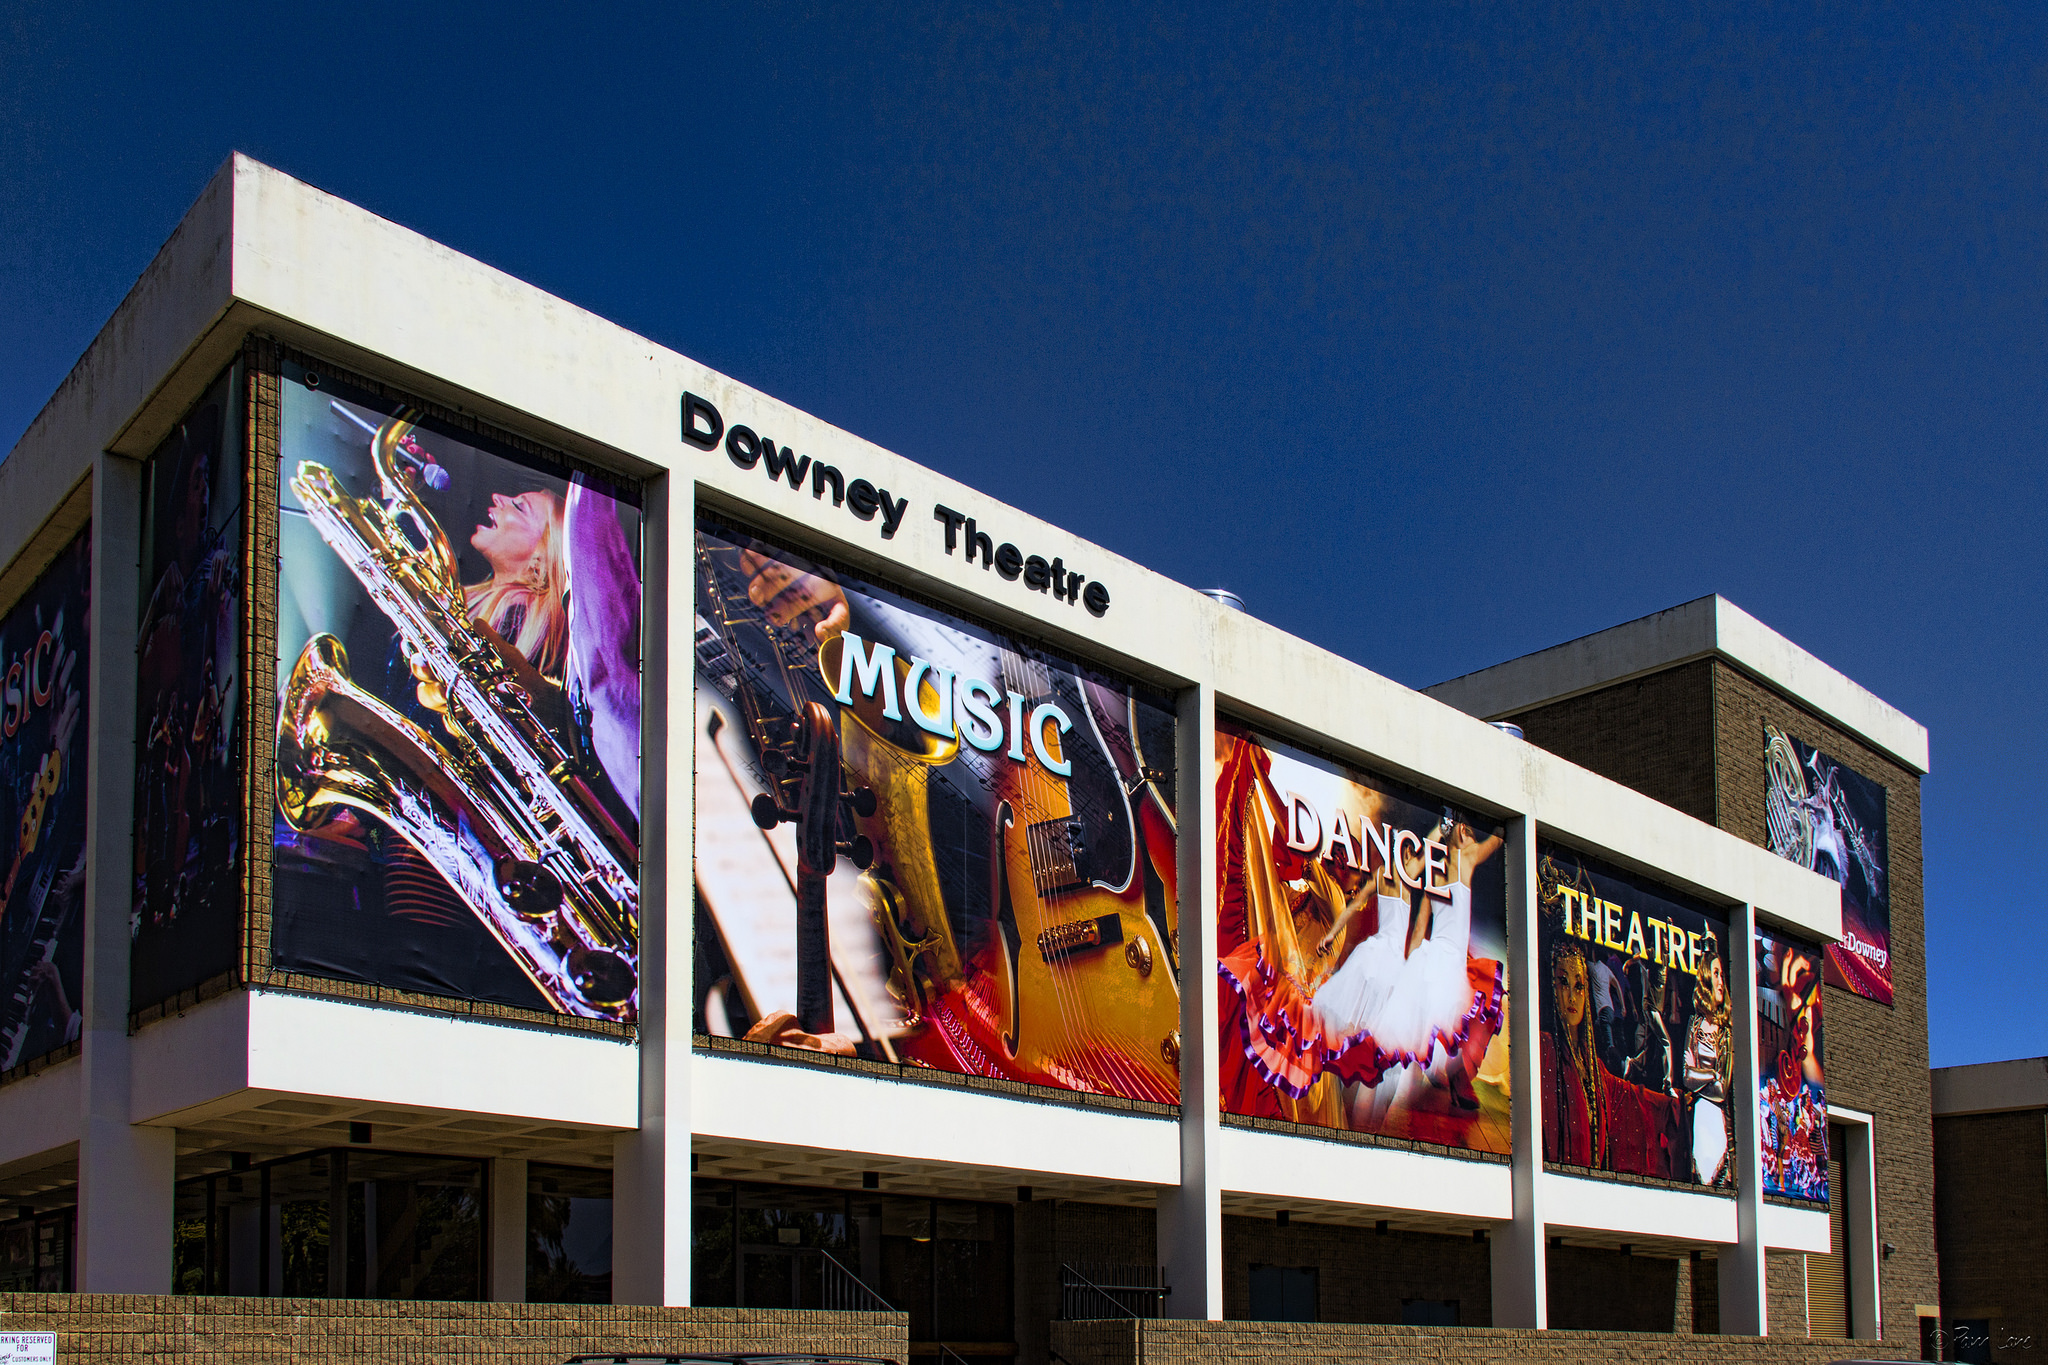 The Downey Civic Theatre. Photo by Pam Lane, DowneyDailyPhotos.com